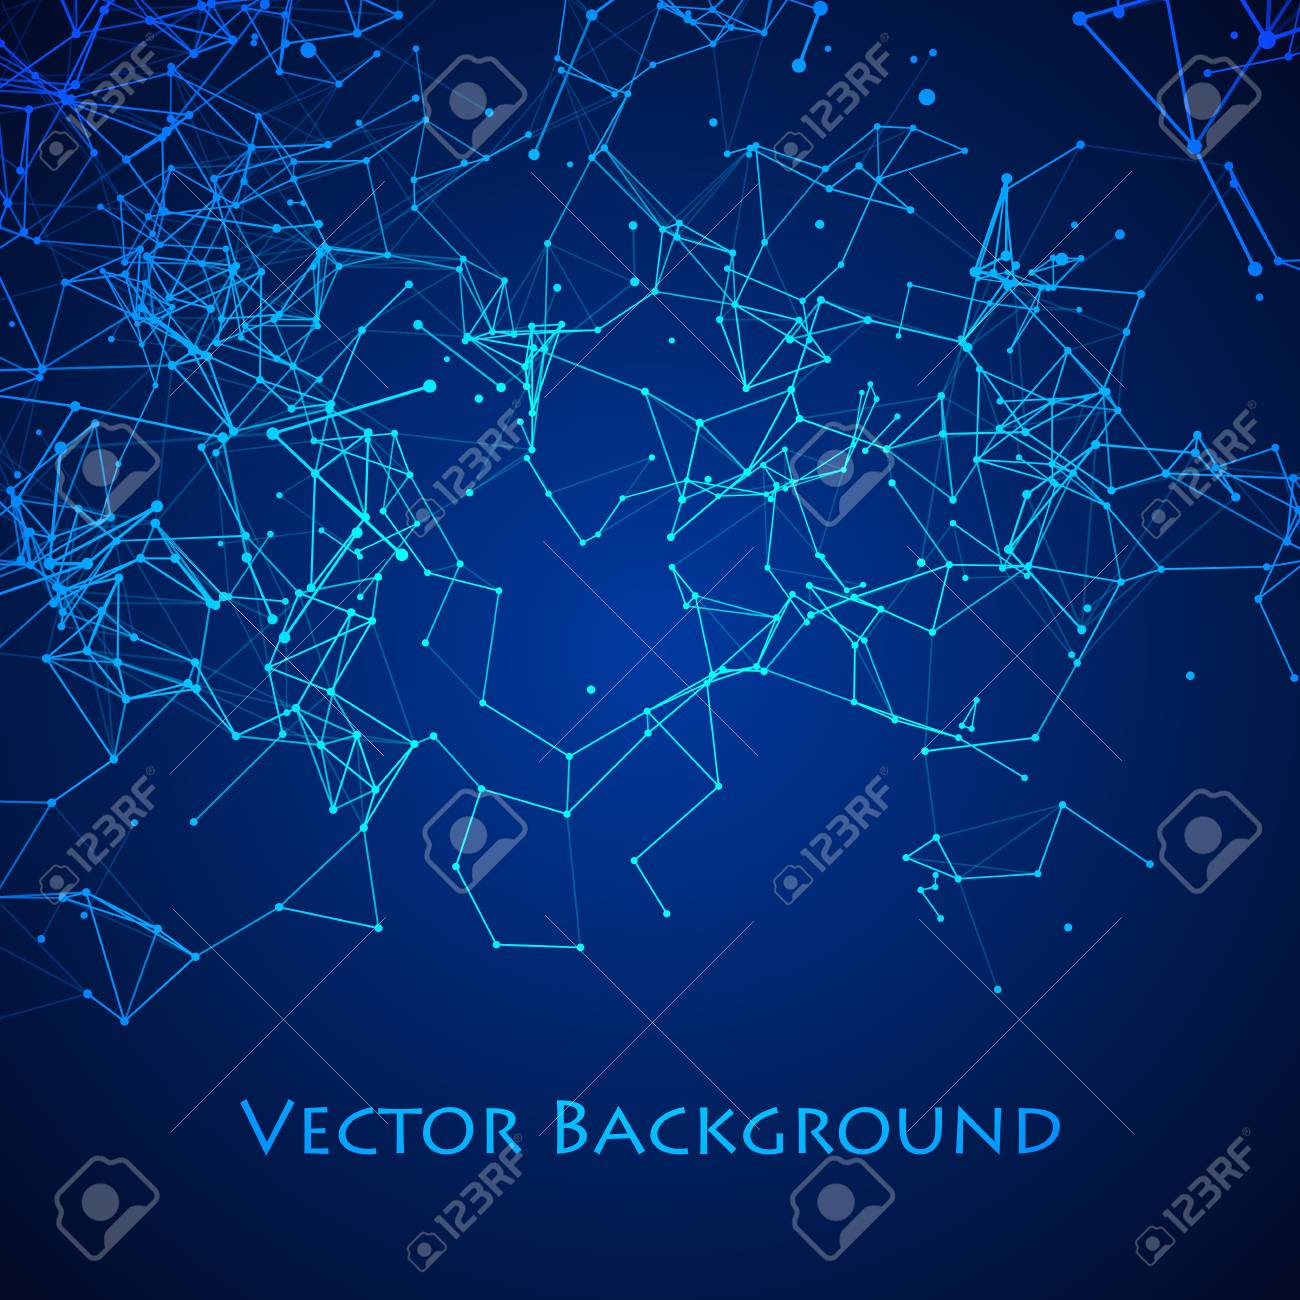 Abstract Network Plexus Background Stock Photo Picture And Royalty Free Image Image 91235379